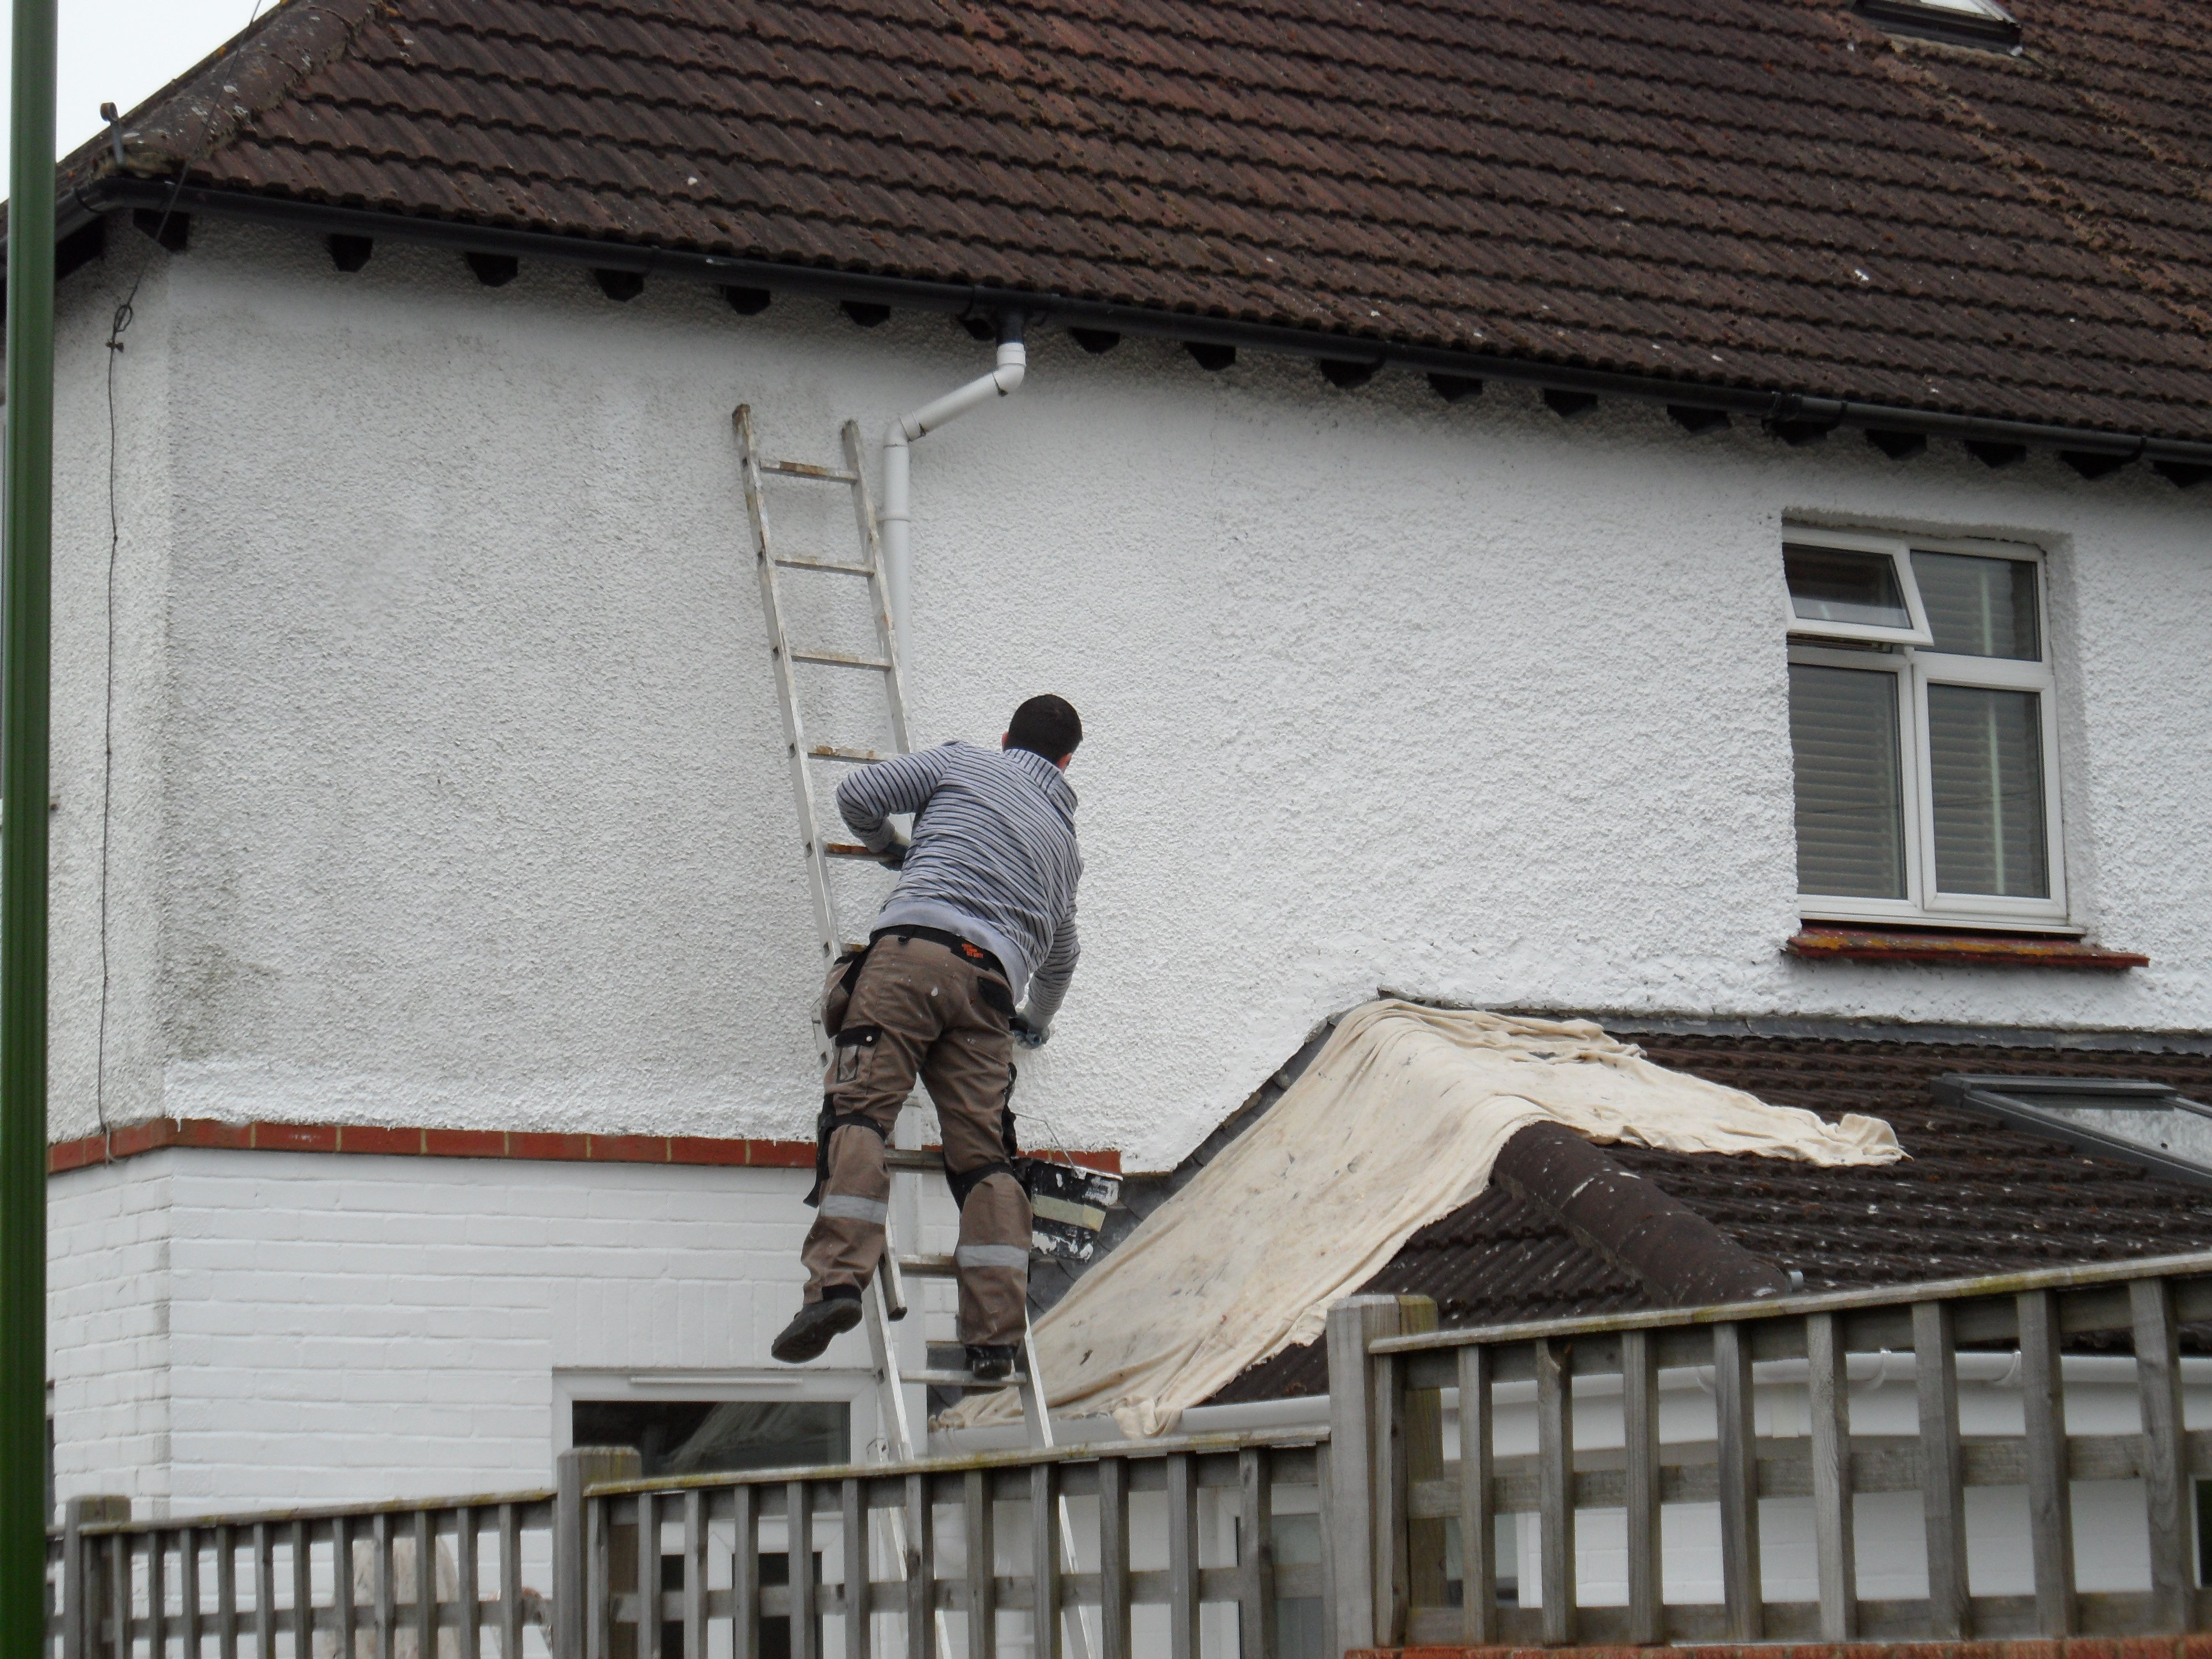 exterior wall being painted